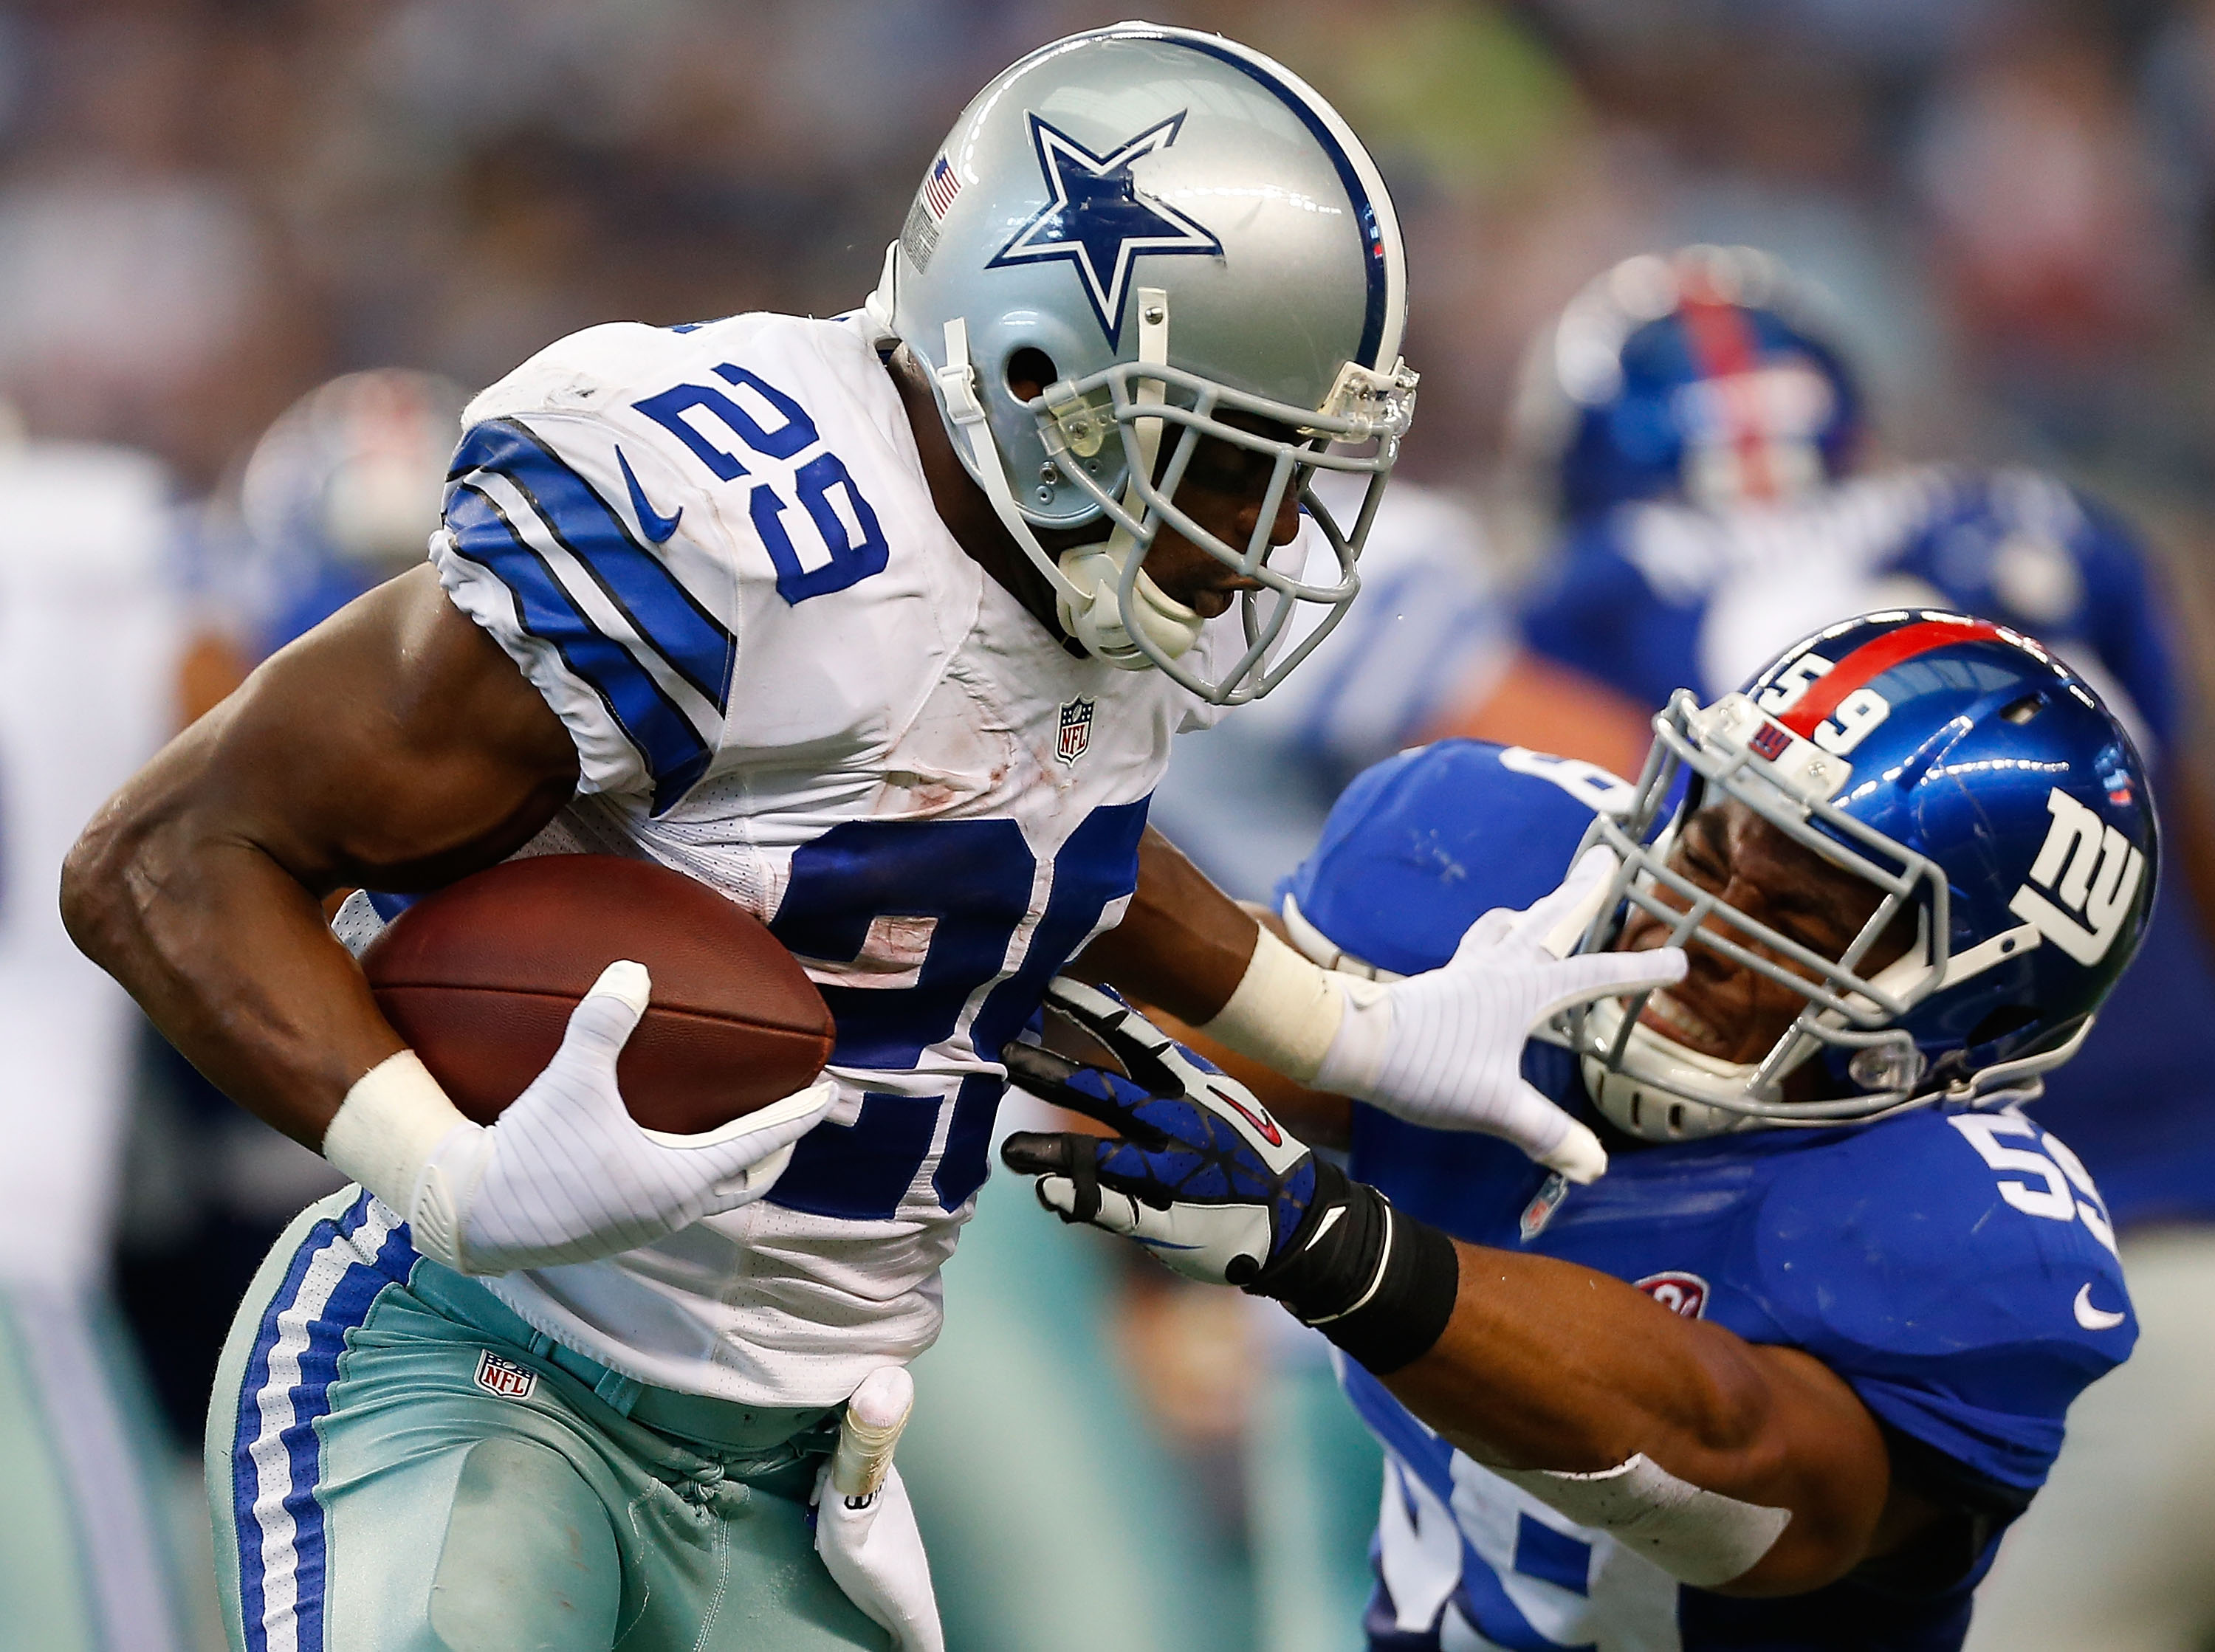 The Giants couldn't handle DeMarco Murray in their first meeting. Can they handle him this time?